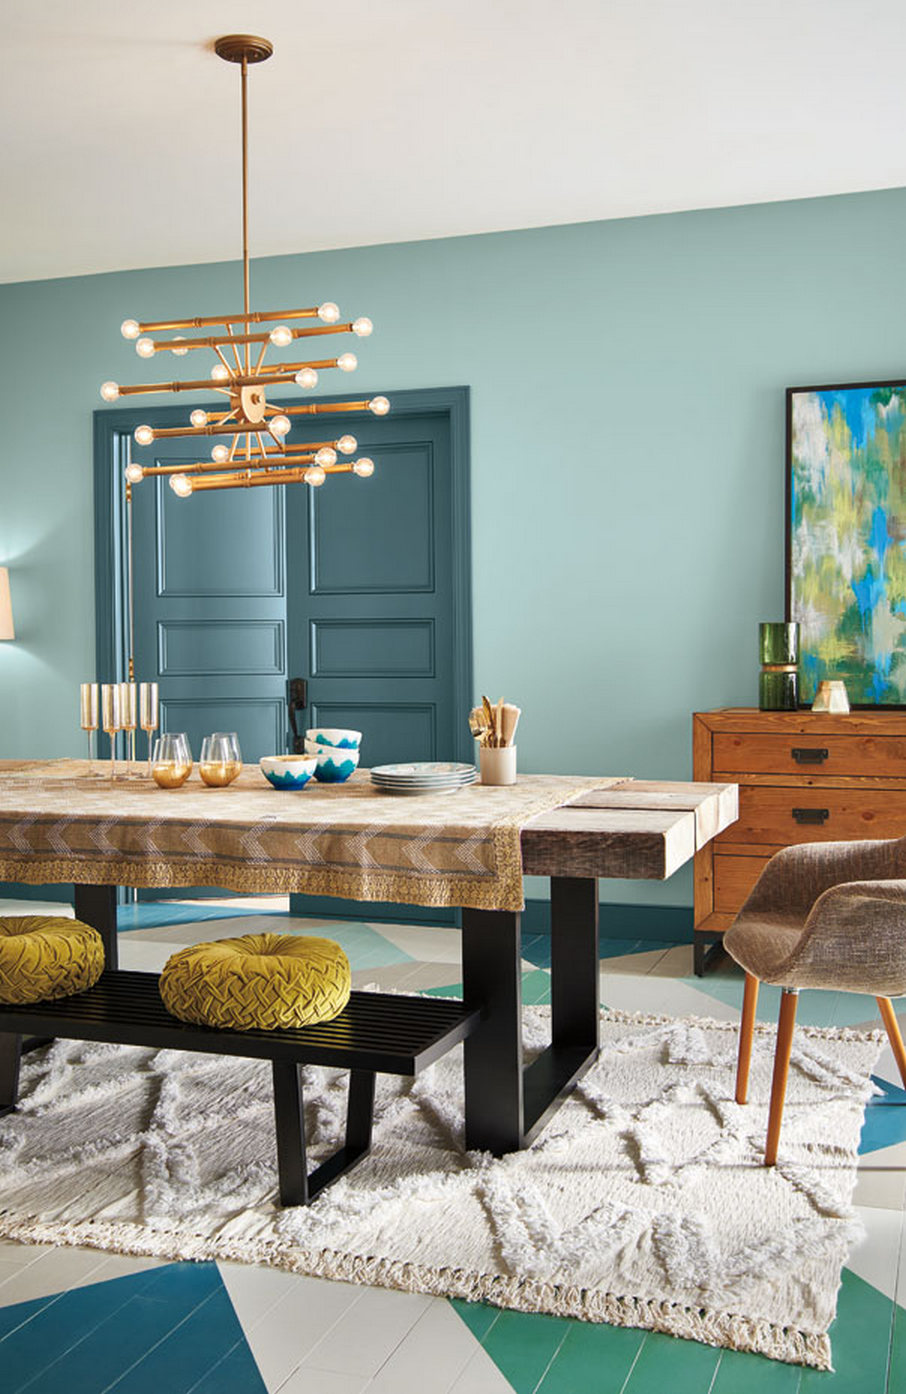 Soft Aqua Walls Are Layered With Deep Blue Green Trim Modern Furnishings And Sparkling Gold Accents Living Room